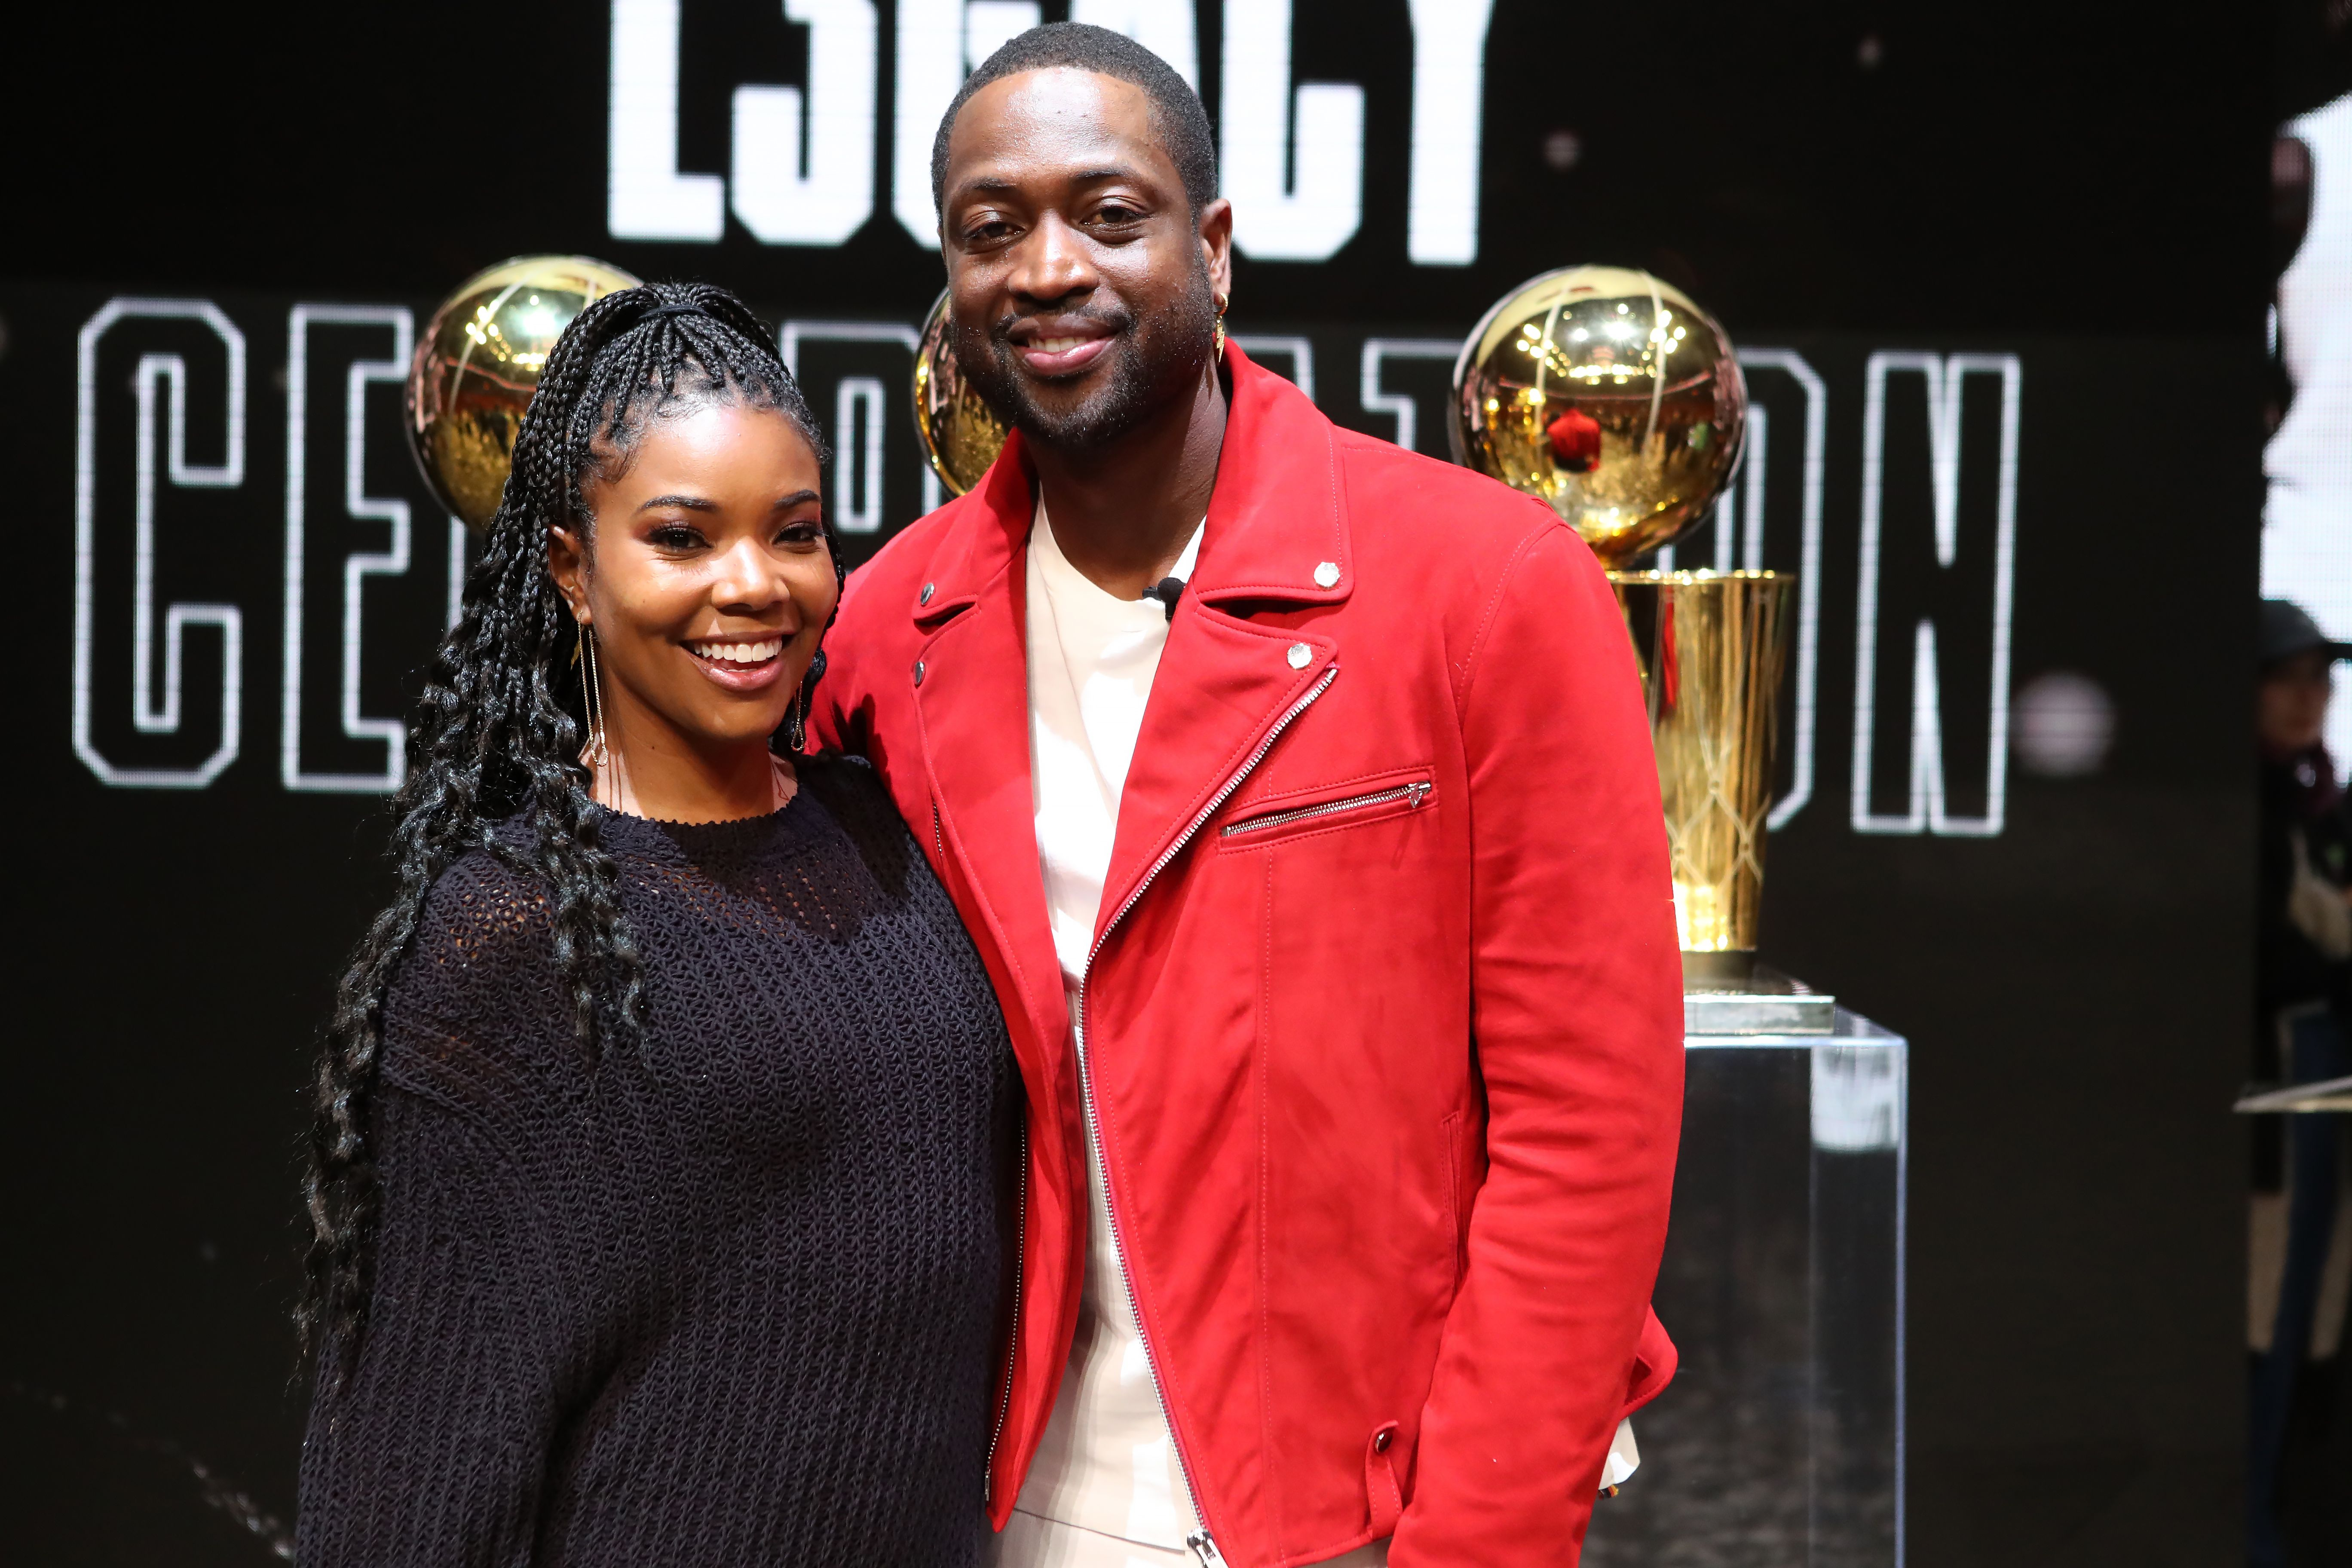 NBA Legend Dwyane Wade poses for a photo with his wife Gabrielle Union at the Jersey Retirement Flashback Event on February 21, 2020 | Photo: Getty Images